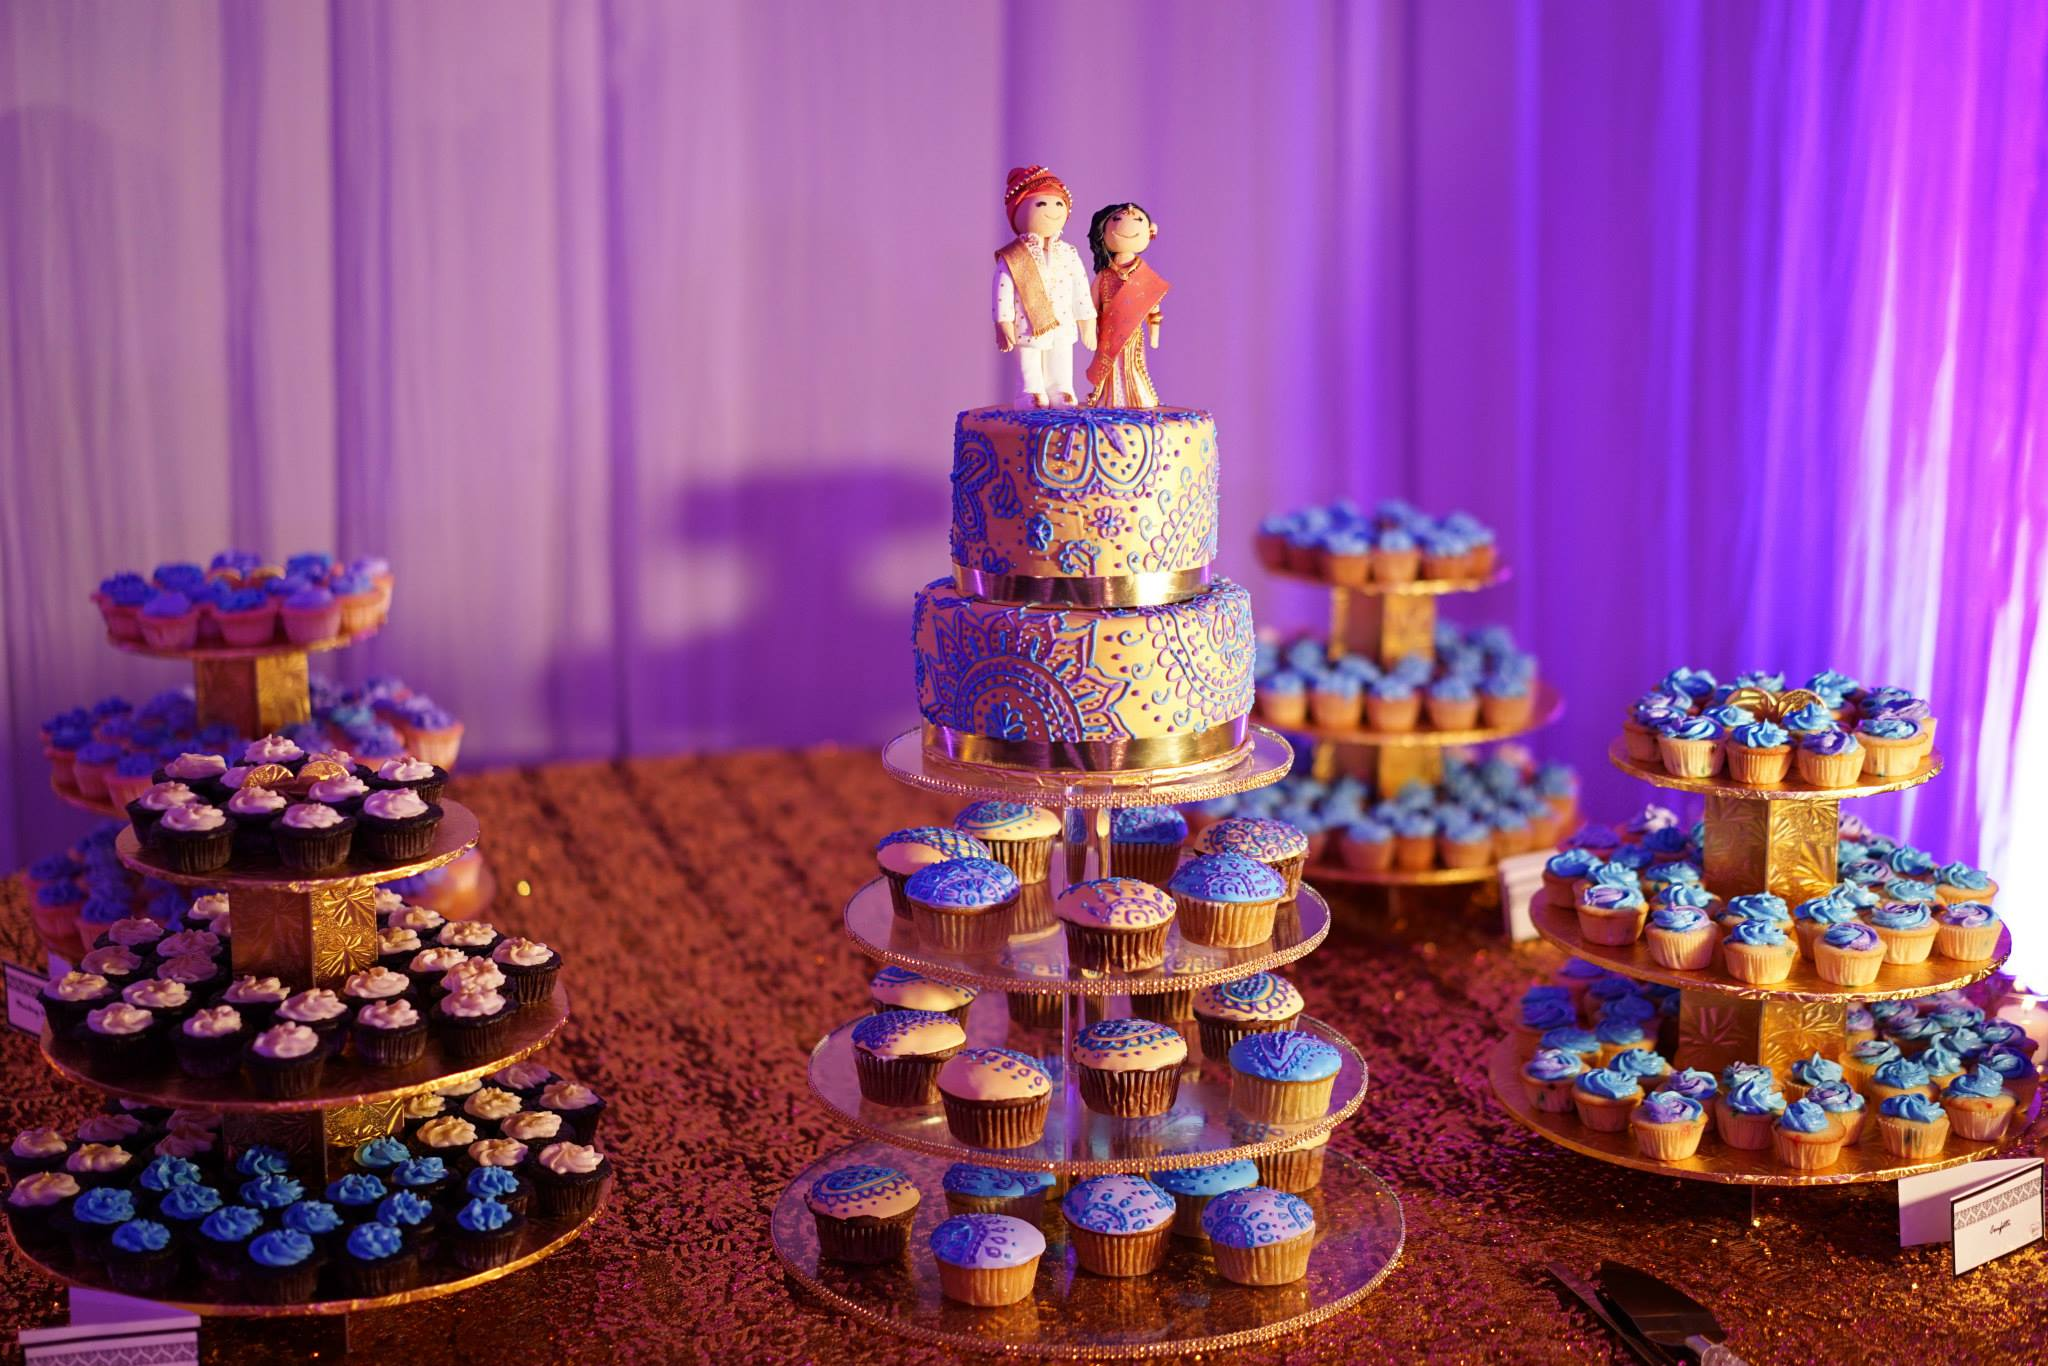 Coop-Richa Wedding Dessert Bar-5.jpg